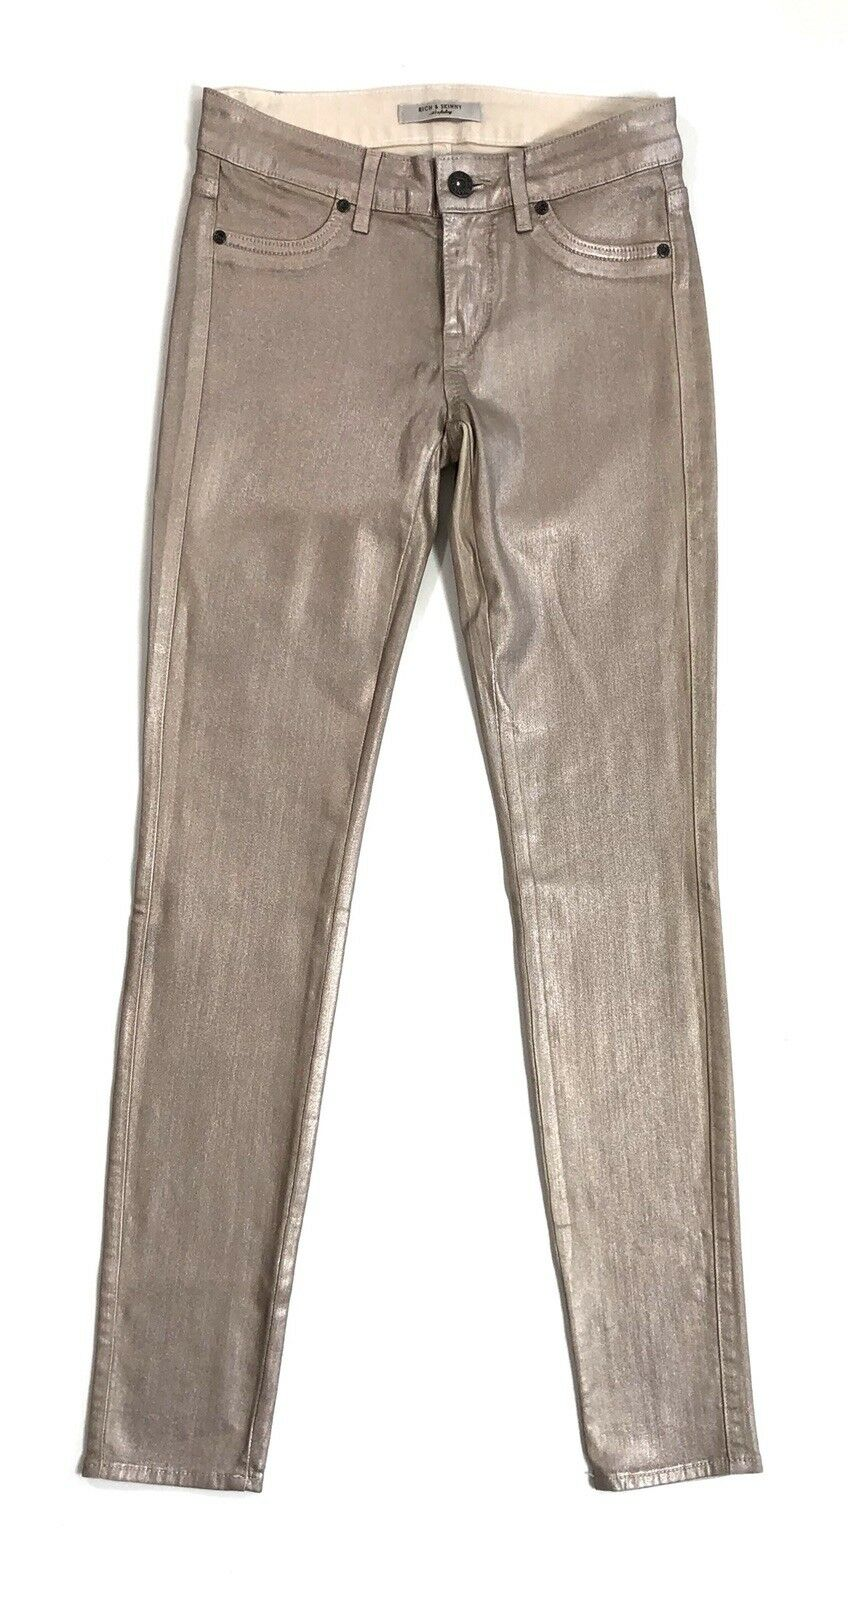 Rich & Skinny size 24 pink gold Coated Stretch Jeans